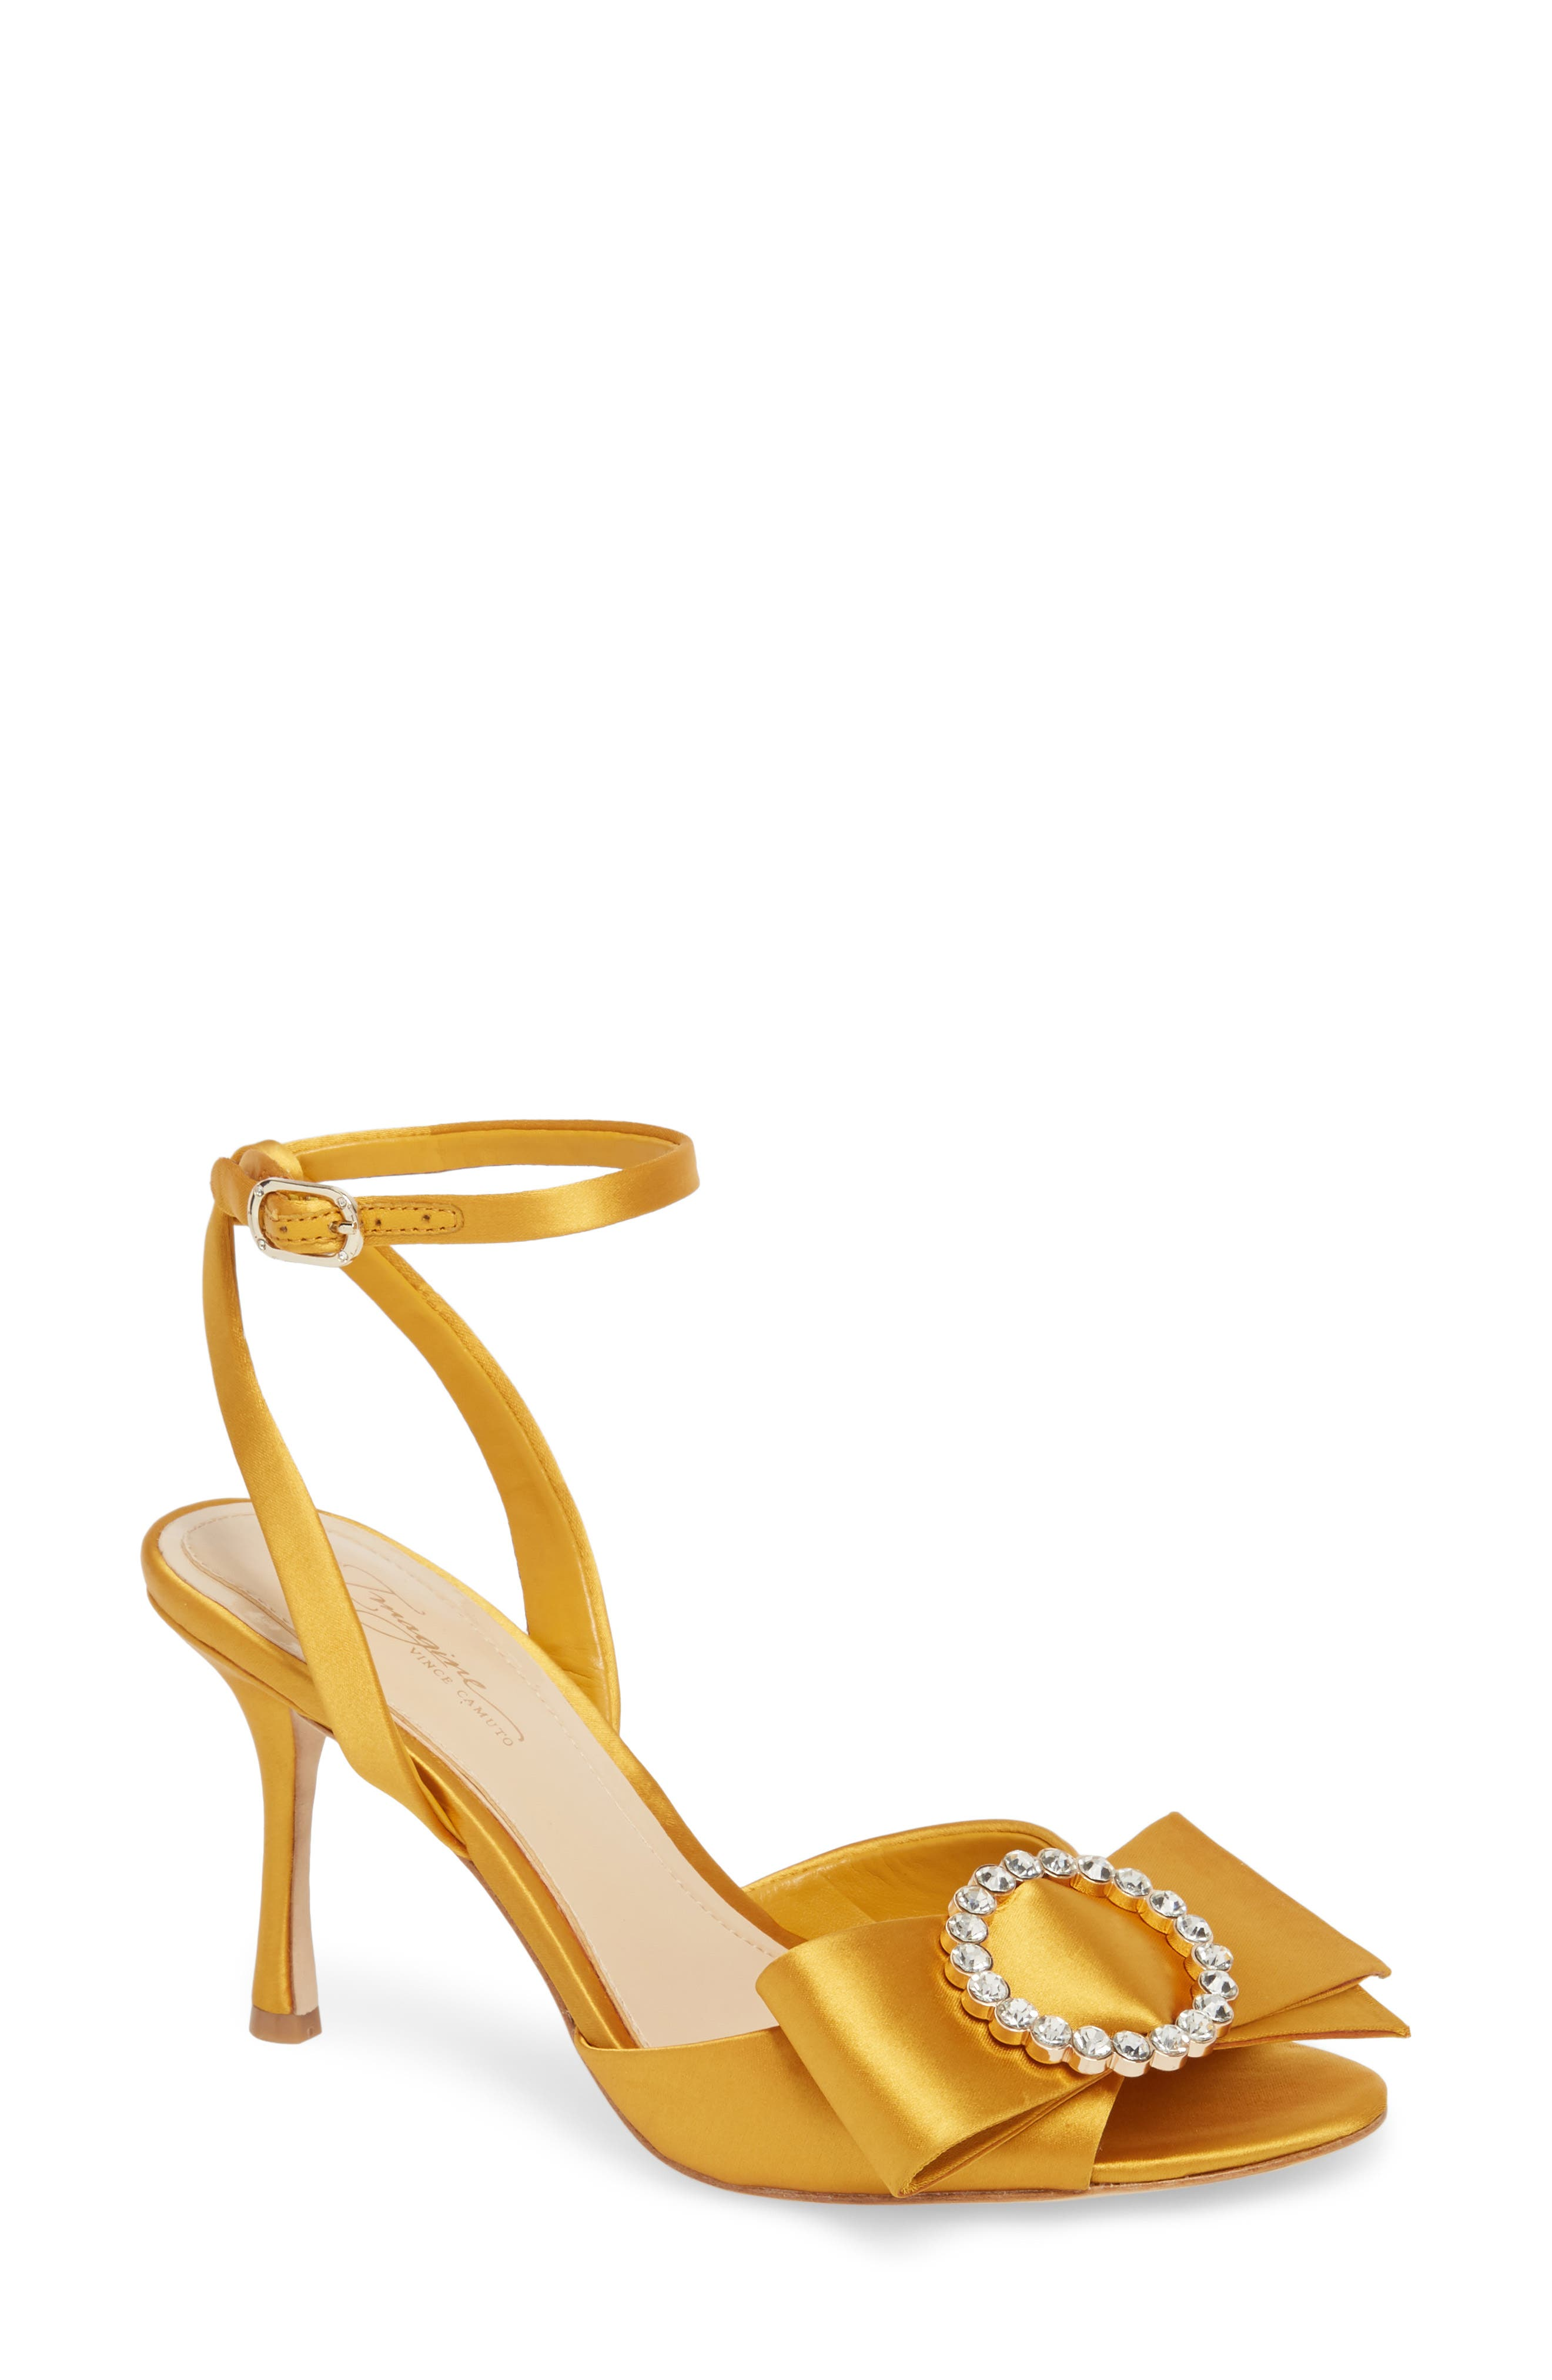 Imagine By Vince Camuto Belia Sandal, Yellow